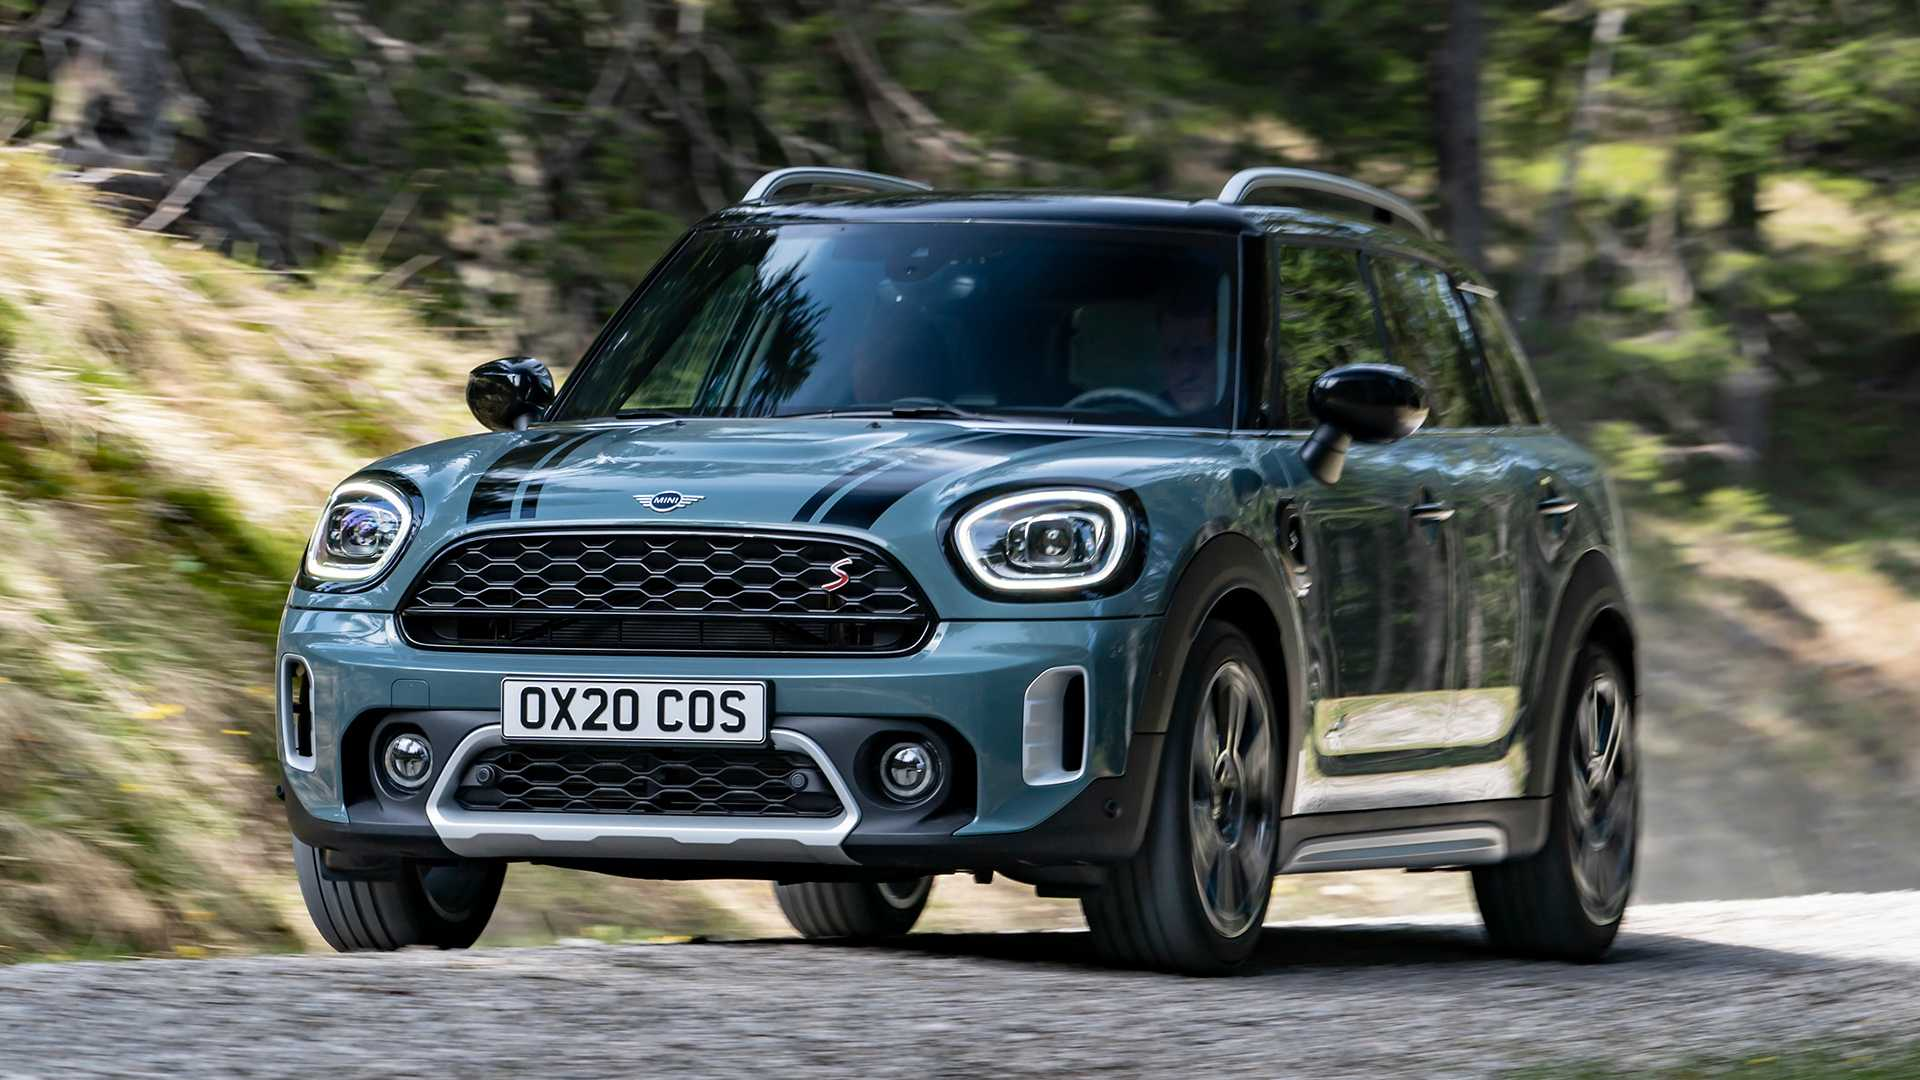 mini-cooper-s-countryman-all4-2020